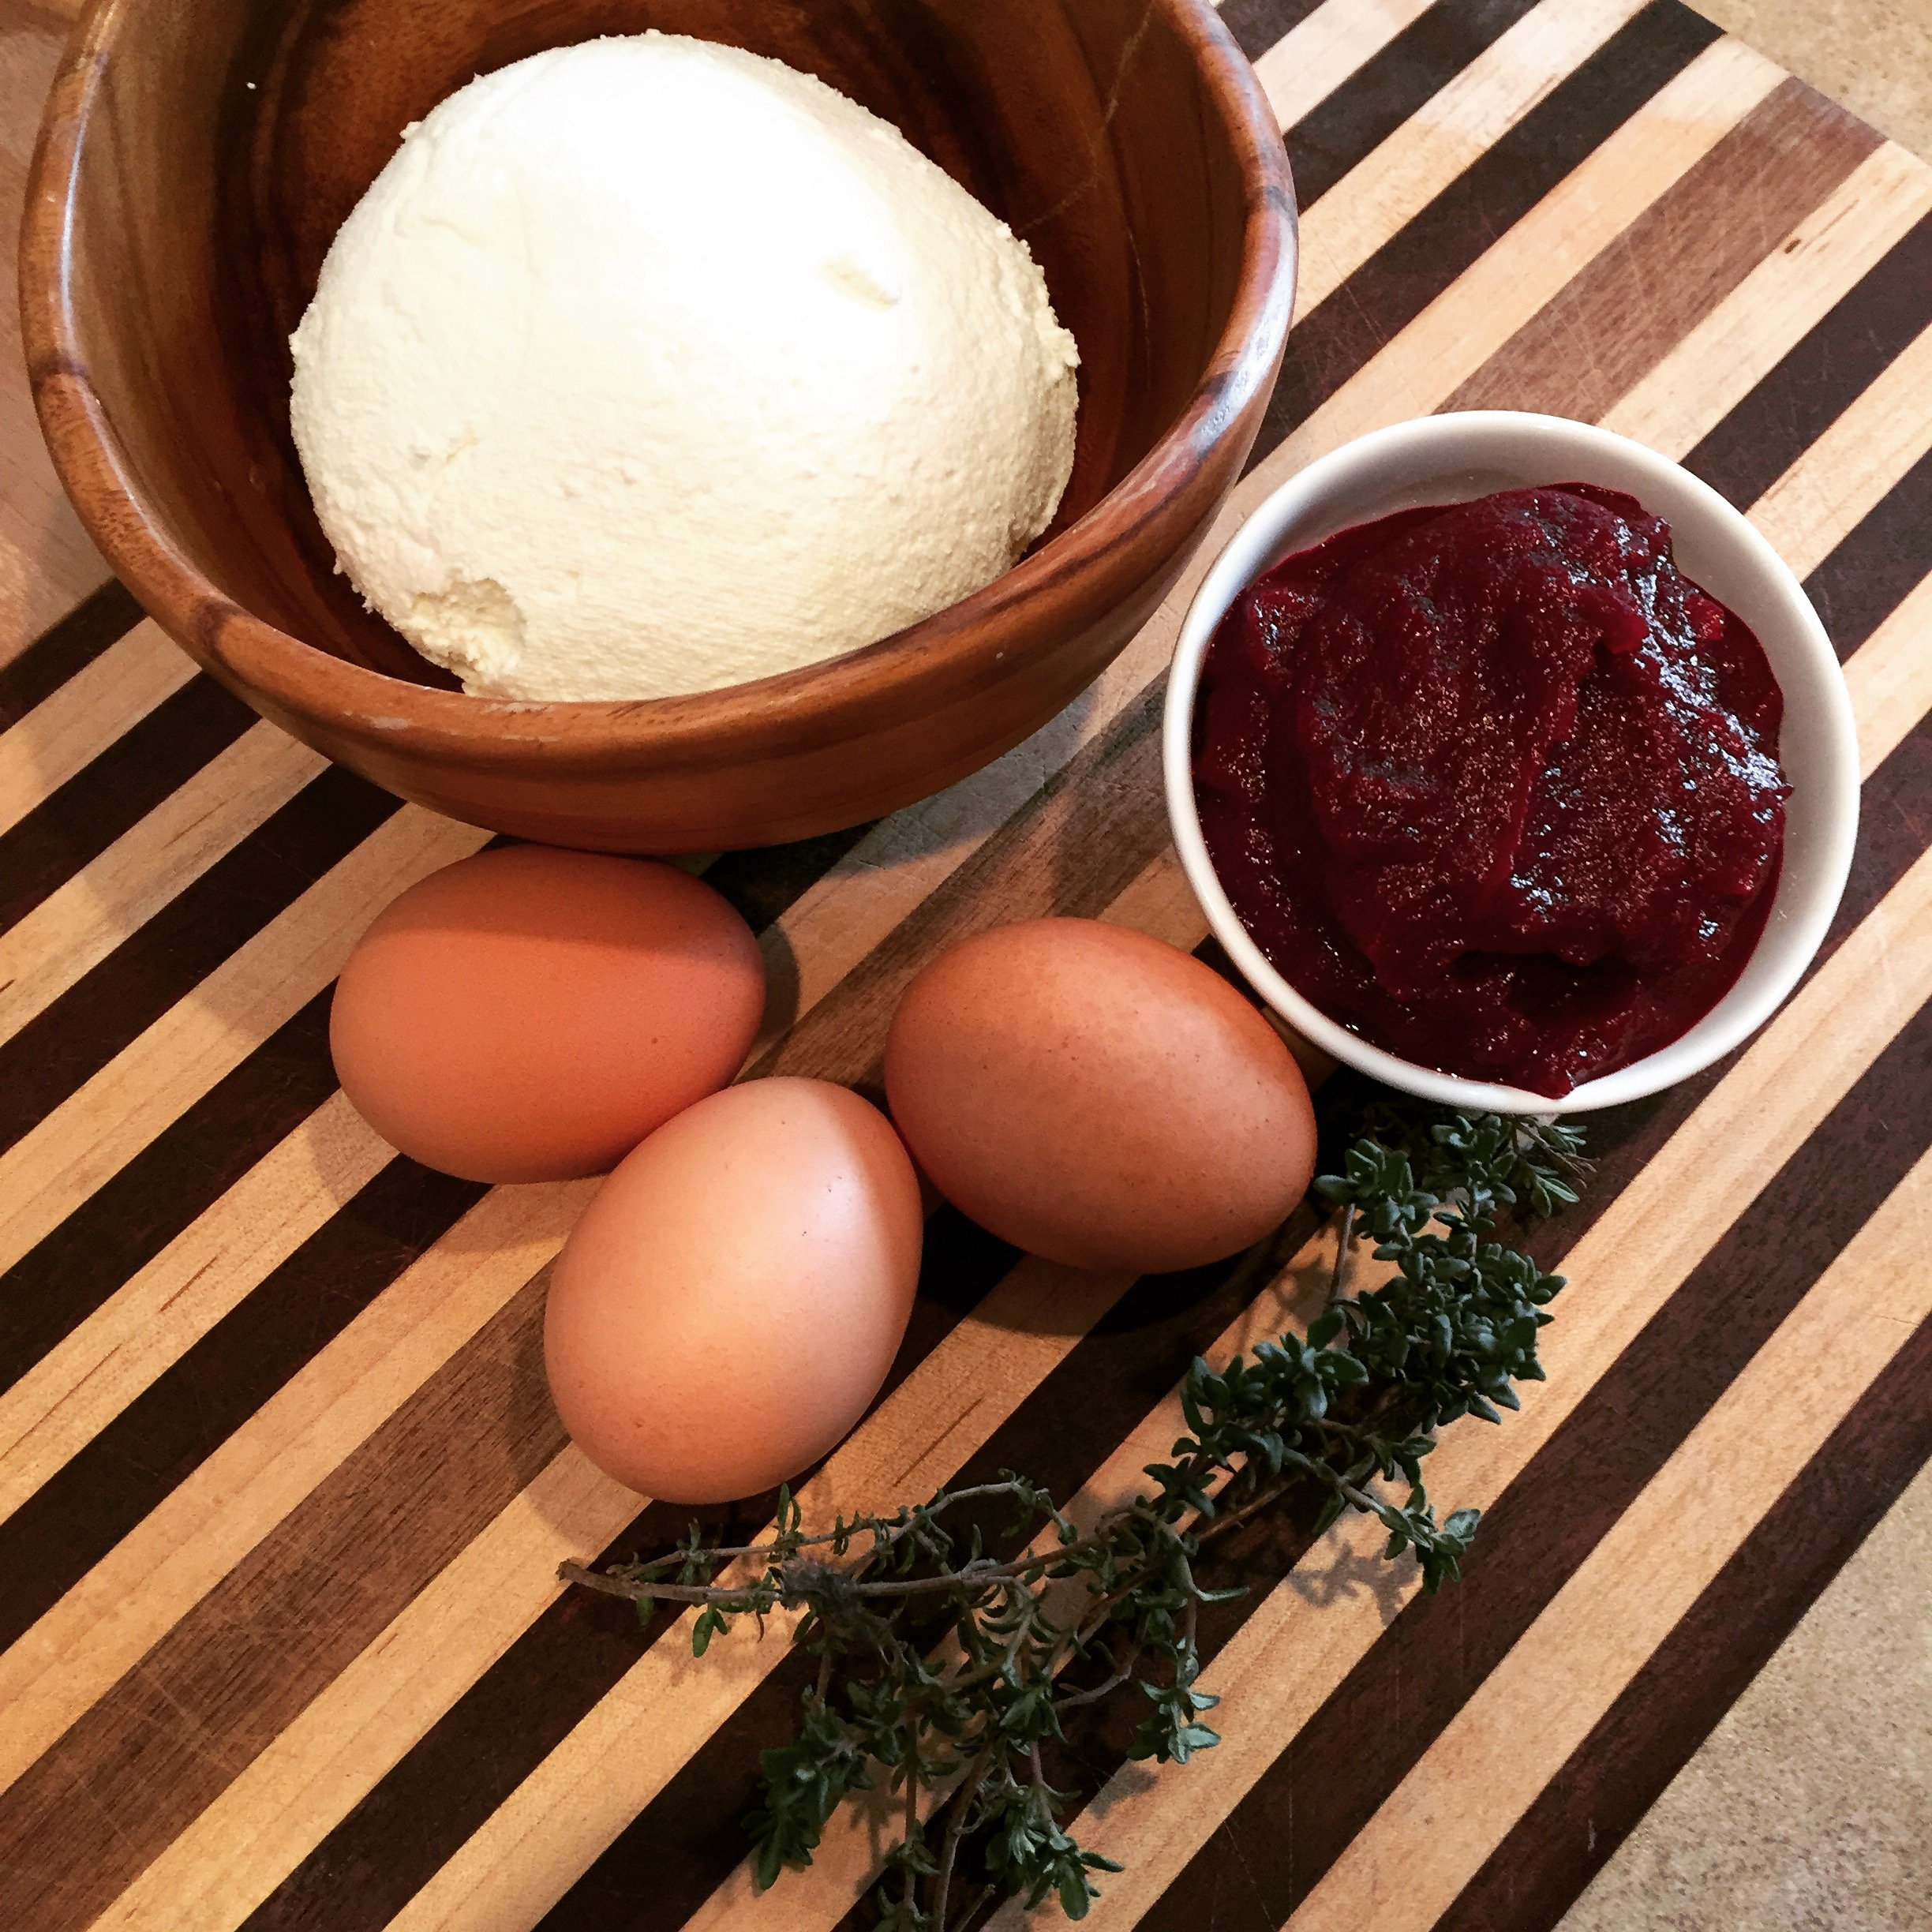 Freshly made ricotta, roasted puree of beets, fresh organic eggs and thyme from my garden.